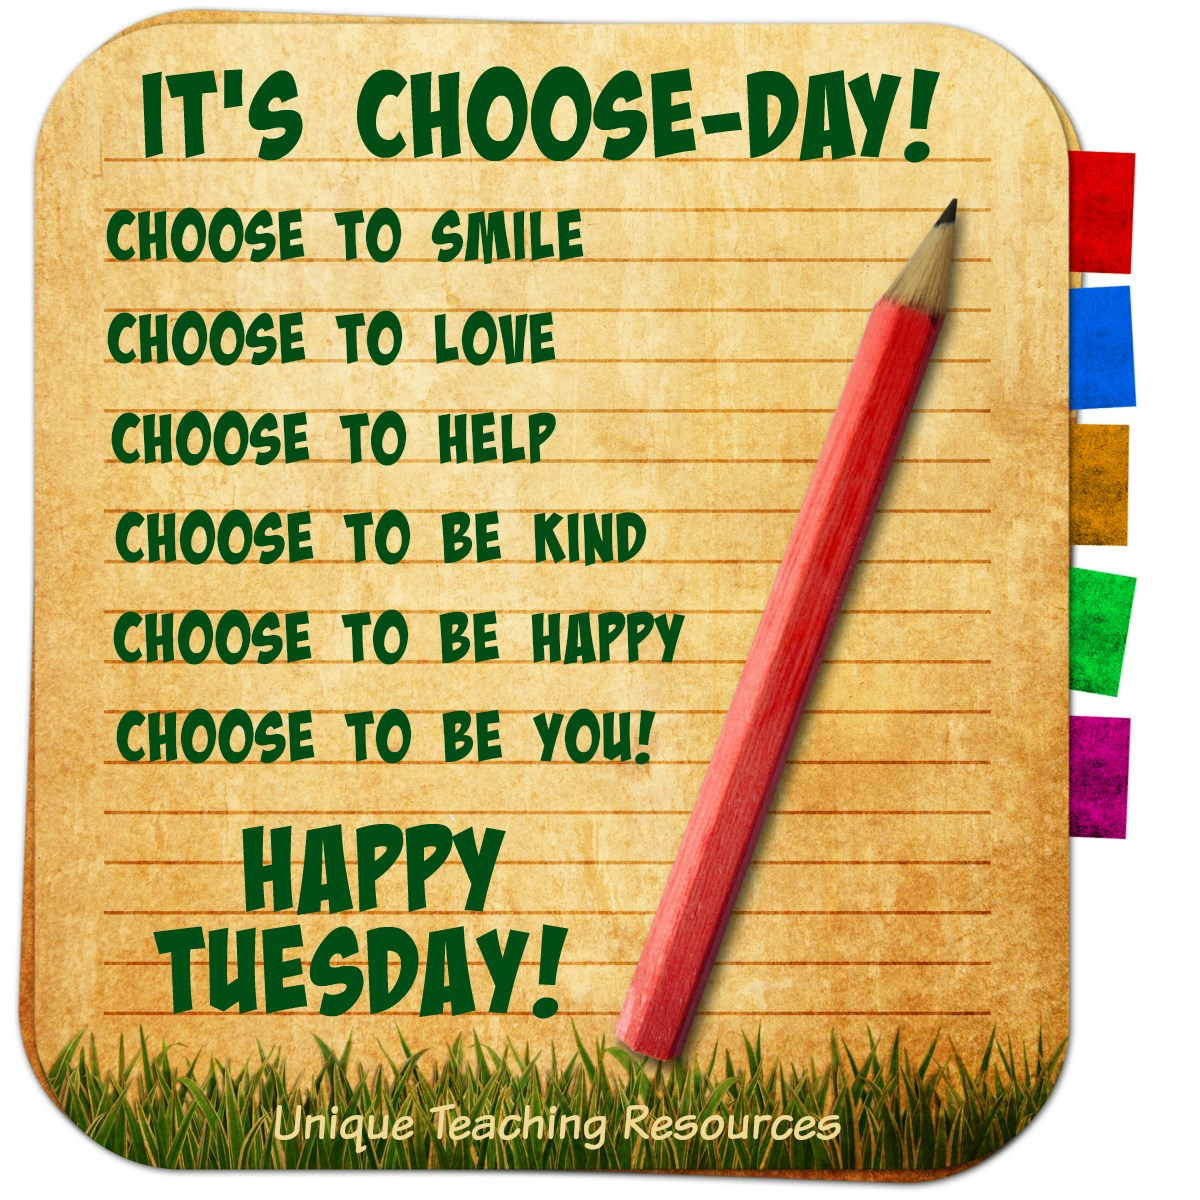 JPEG-tuesday-quote-its-choose-day.jpg